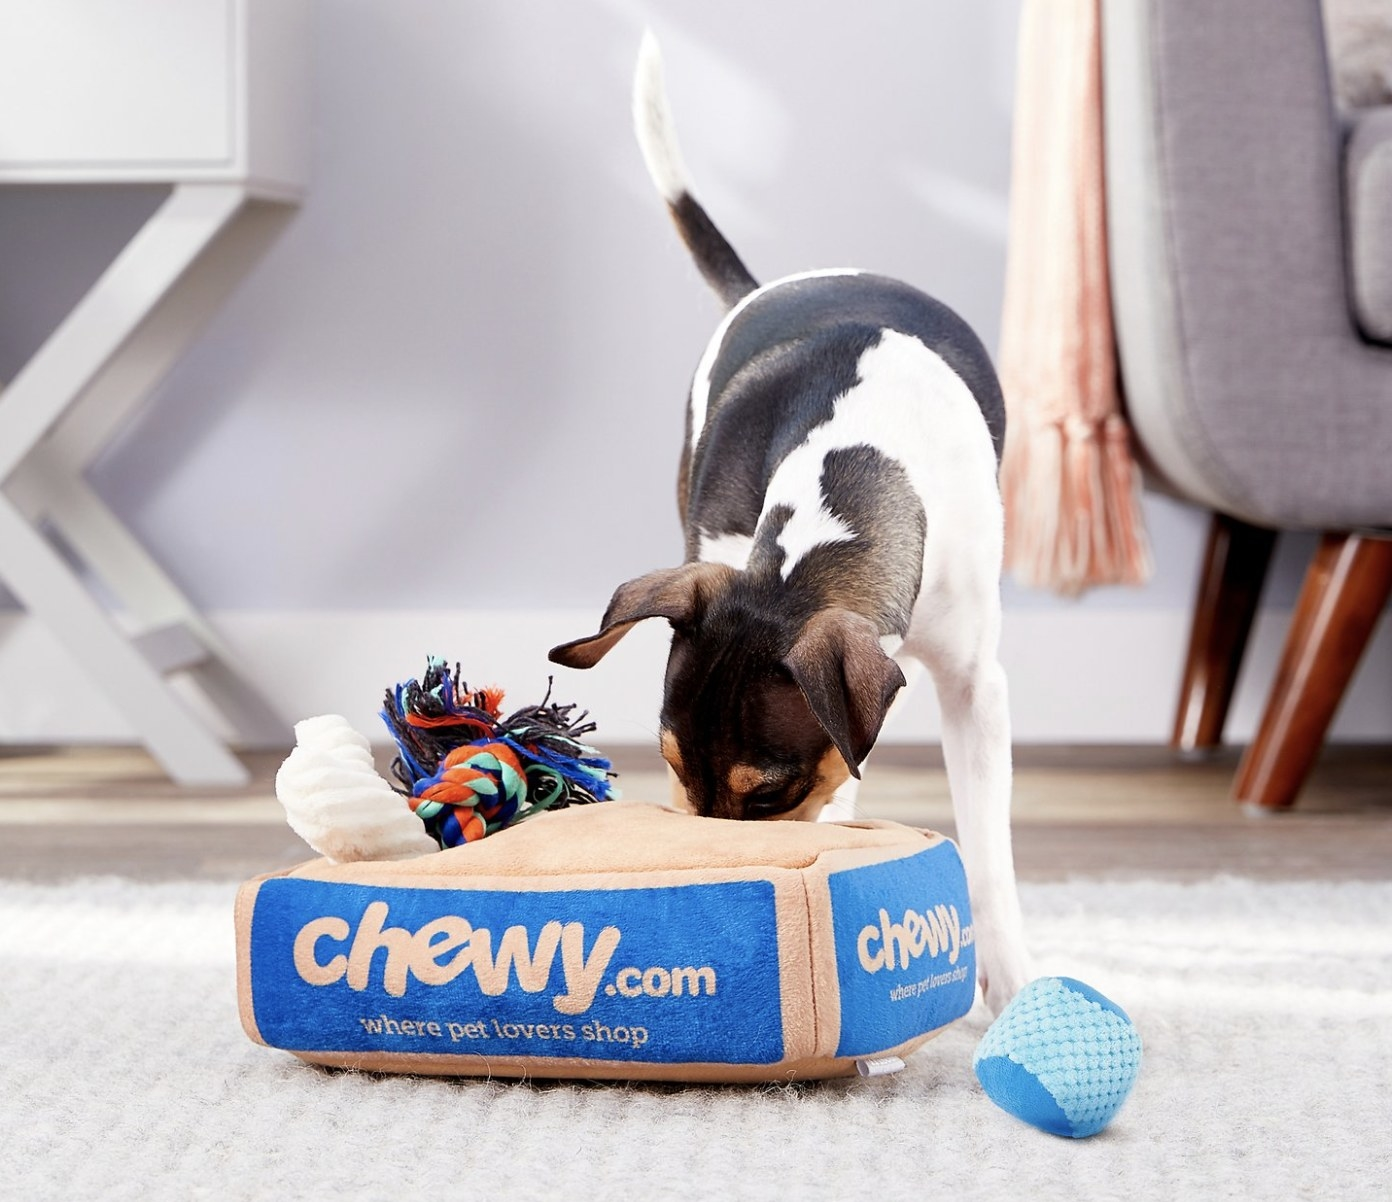 Dog is playing with the Chewy hide in seek toy